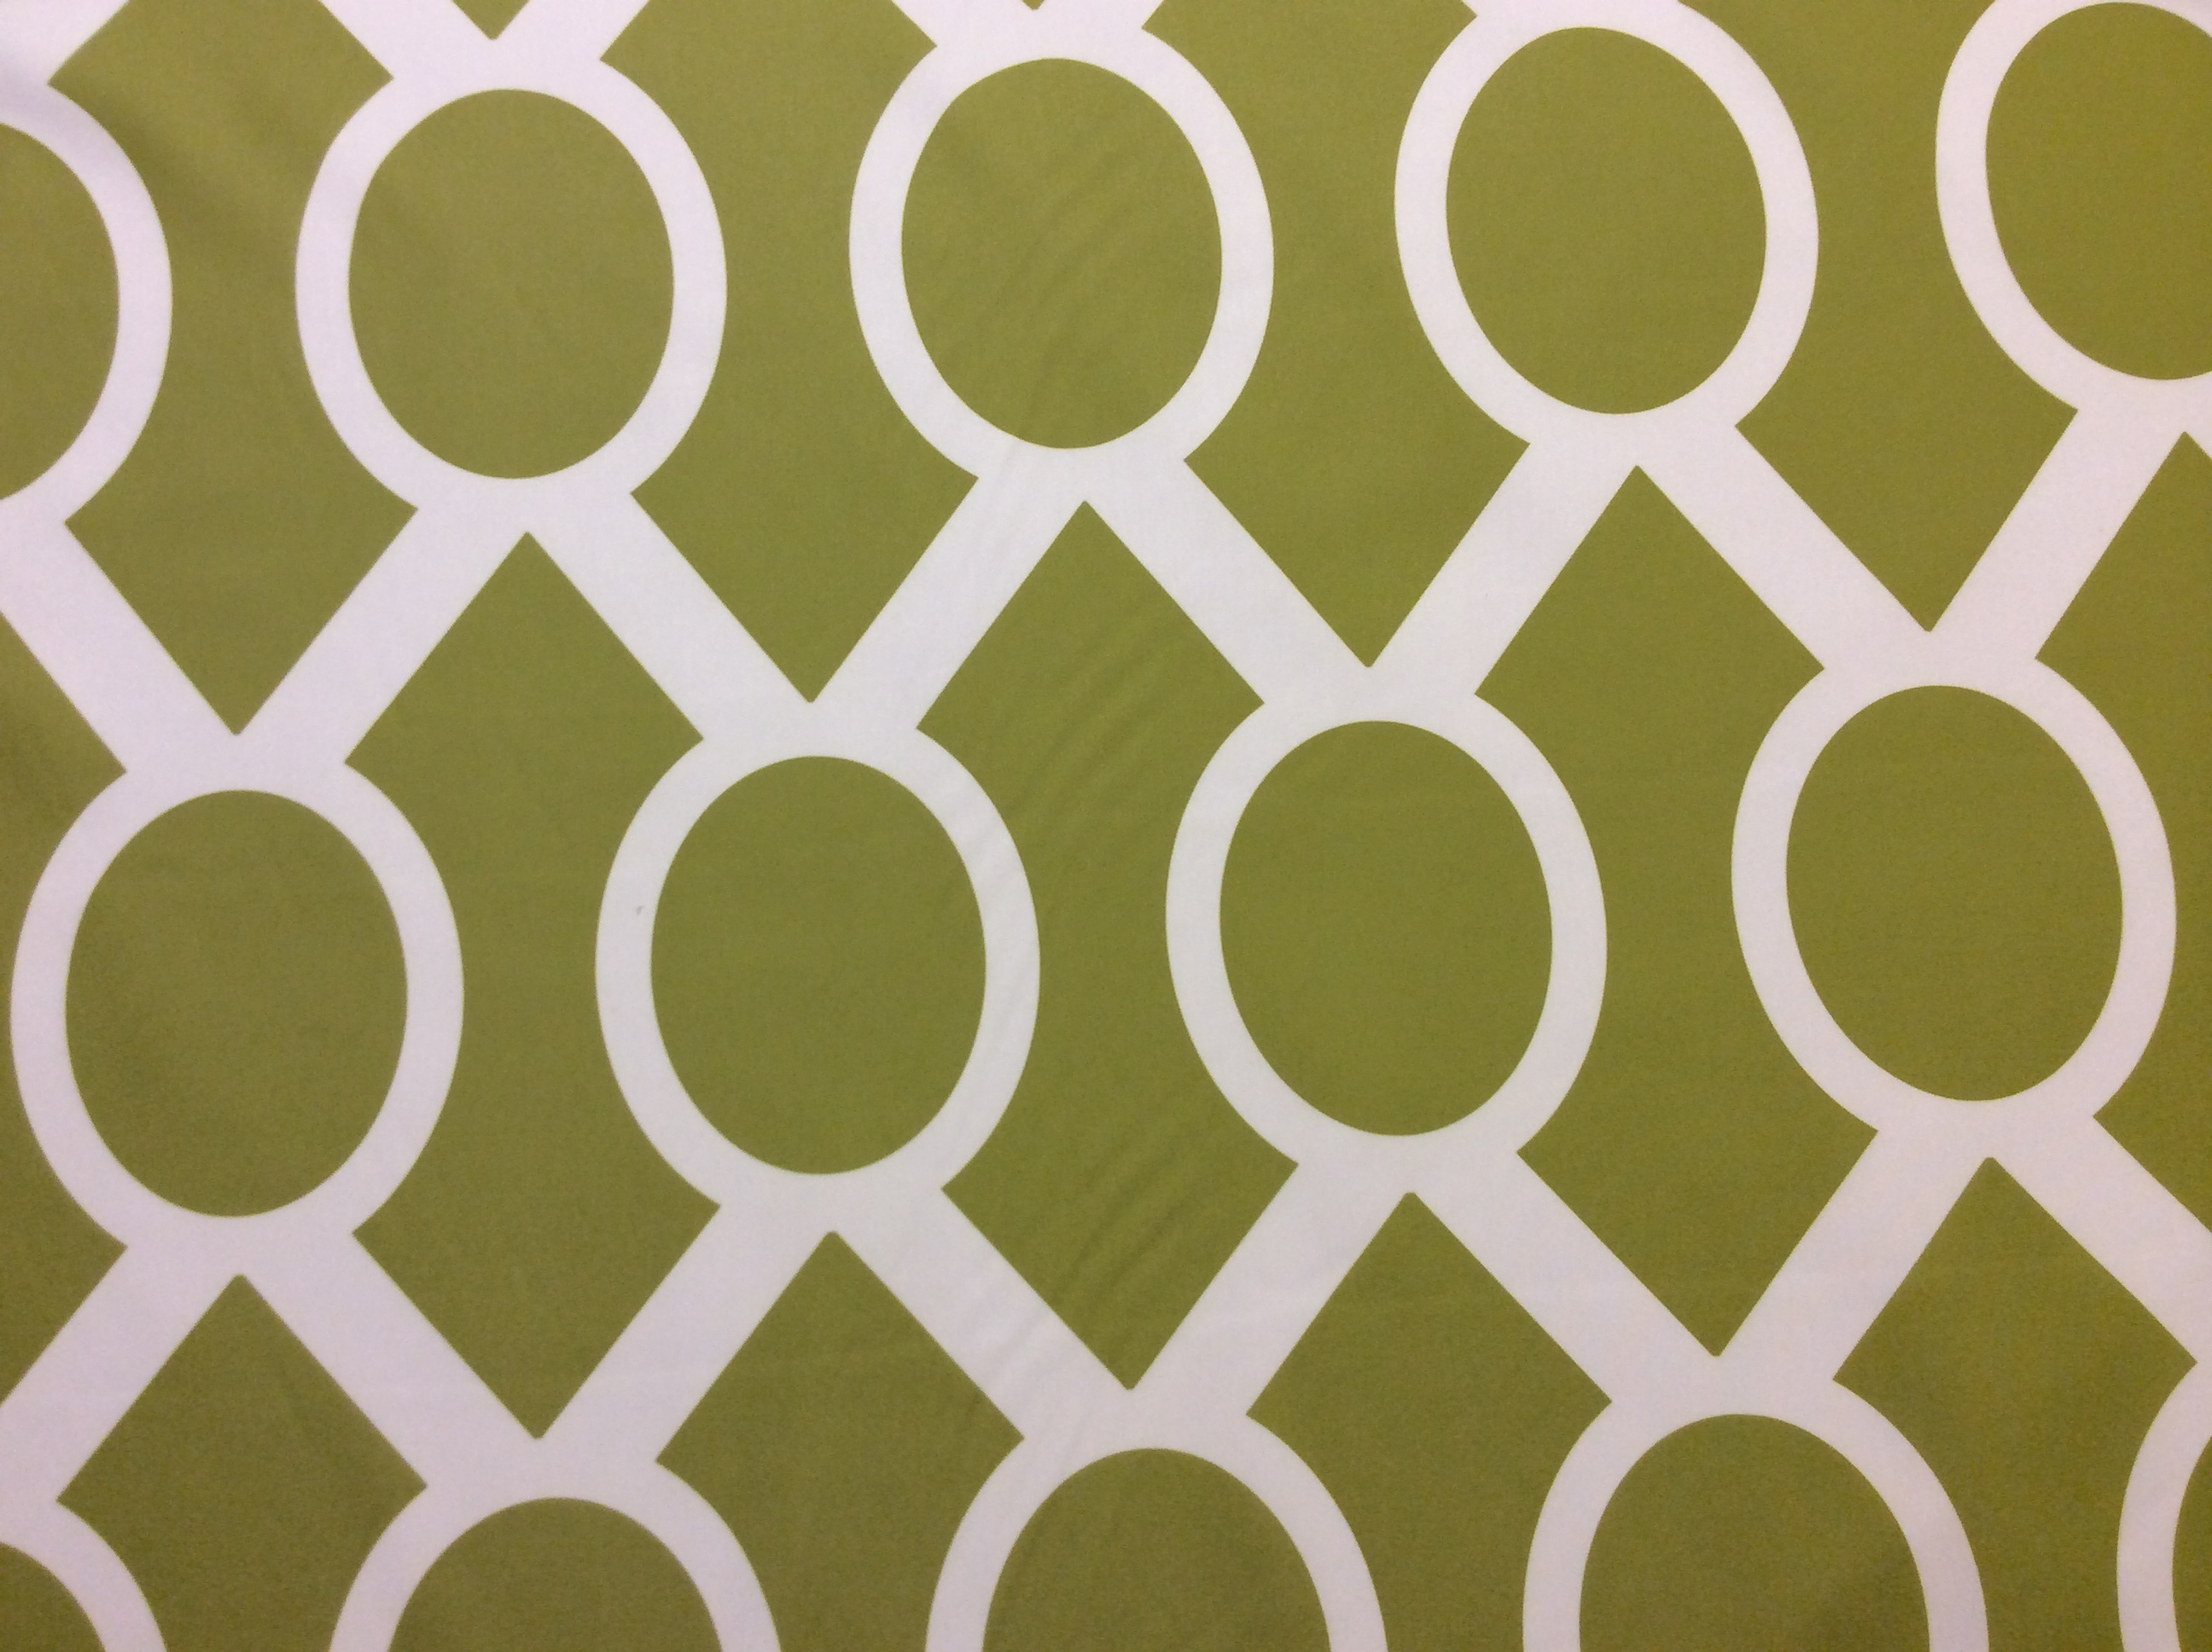 Hot Green and White Print